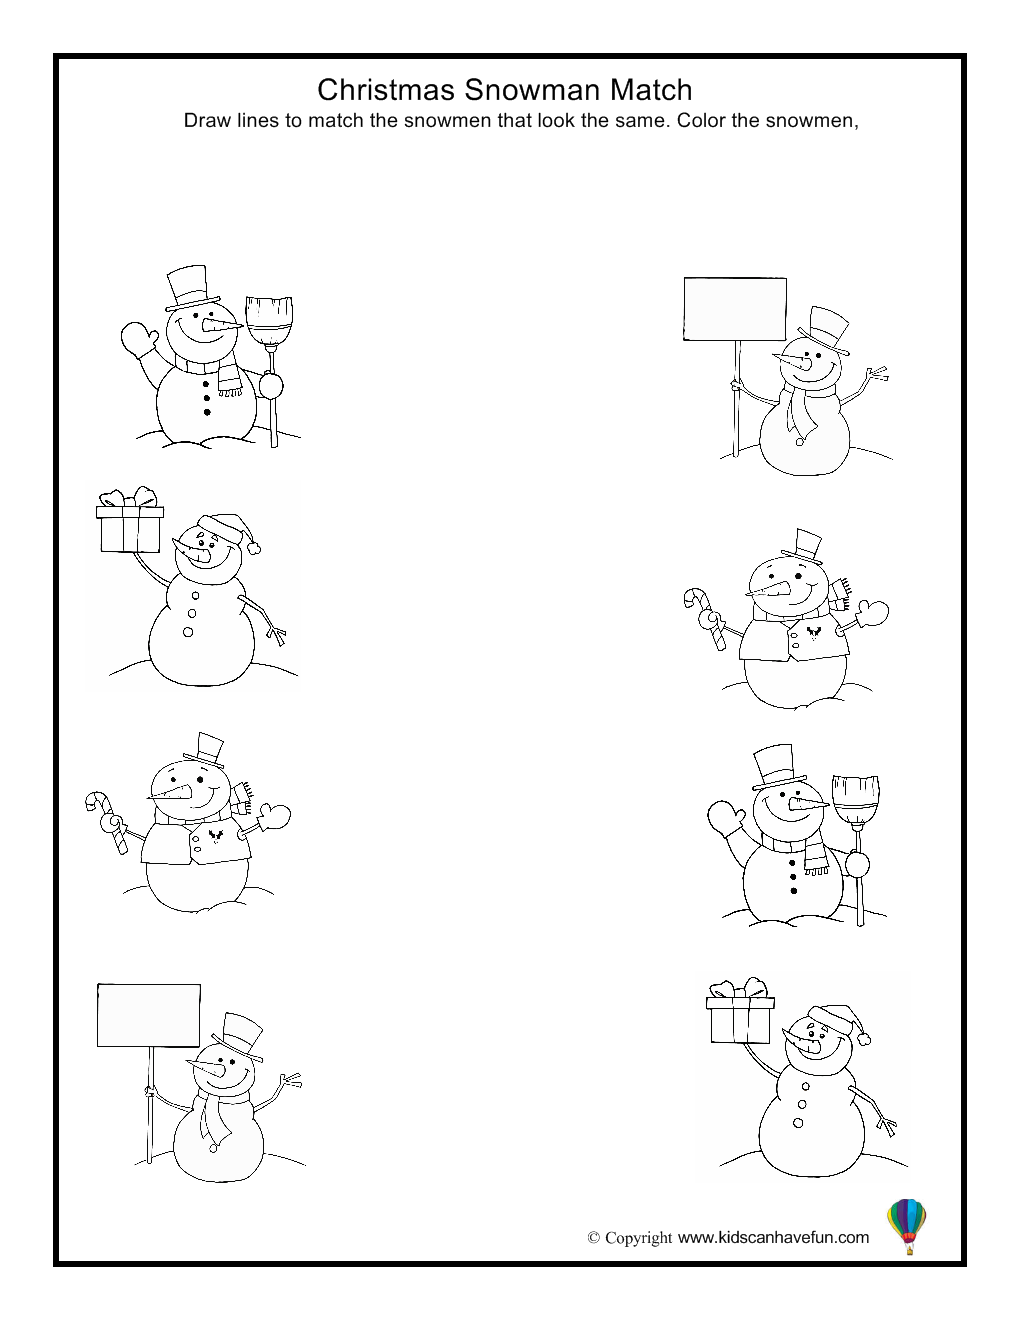 christmas snowman match worksheet christmas activities with diy gift ideas games worksheets. Black Bedroom Furniture Sets. Home Design Ideas